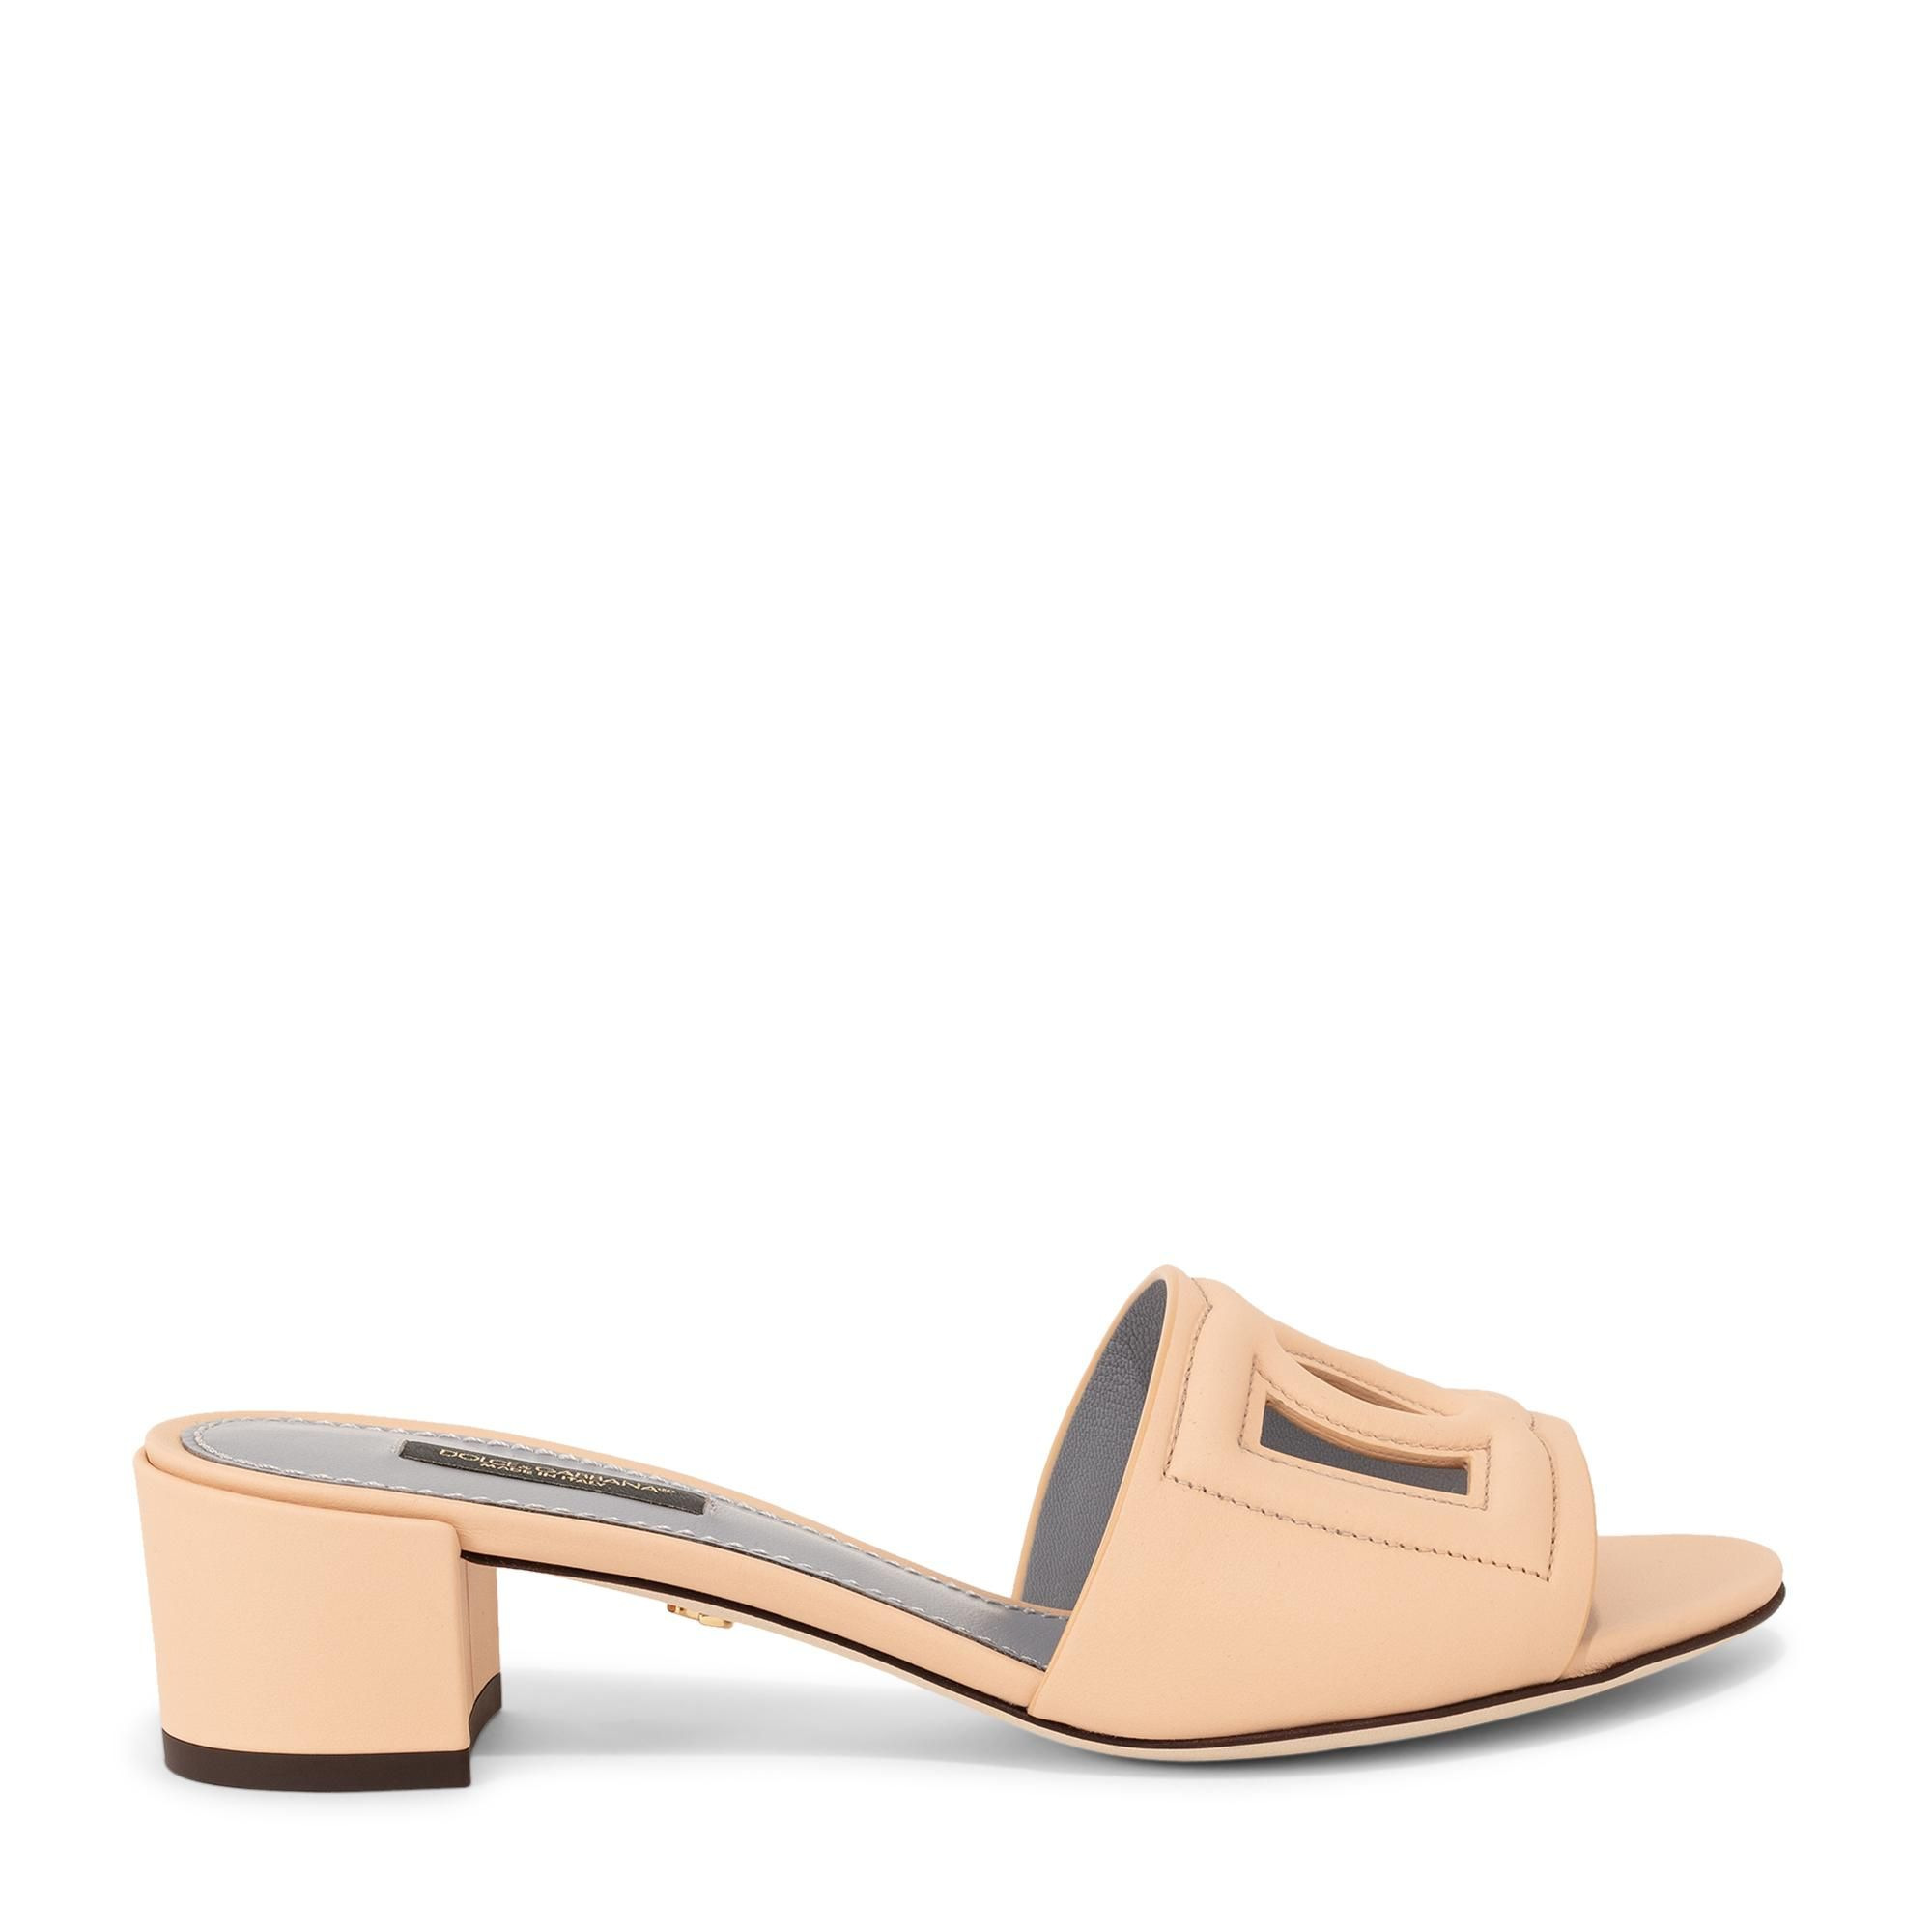 Exclusive embossed leather mules